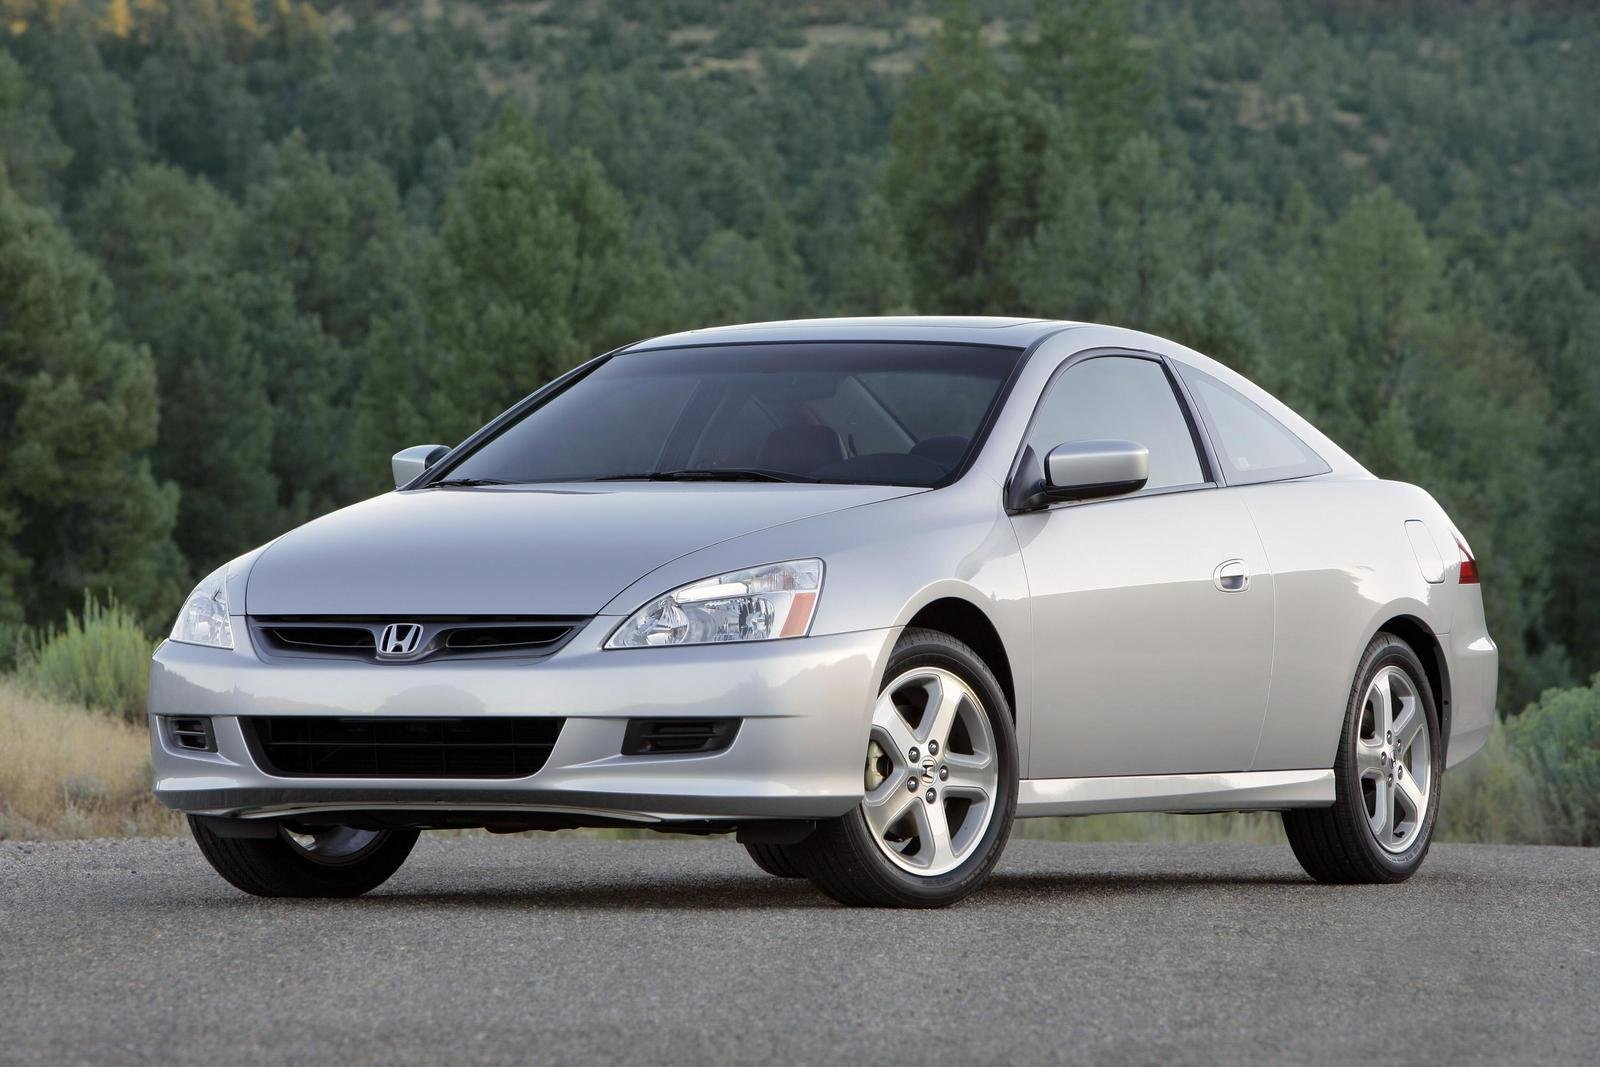 2006 honda accord coupe picture 93854 car review top. Black Bedroom Furniture Sets. Home Design Ideas